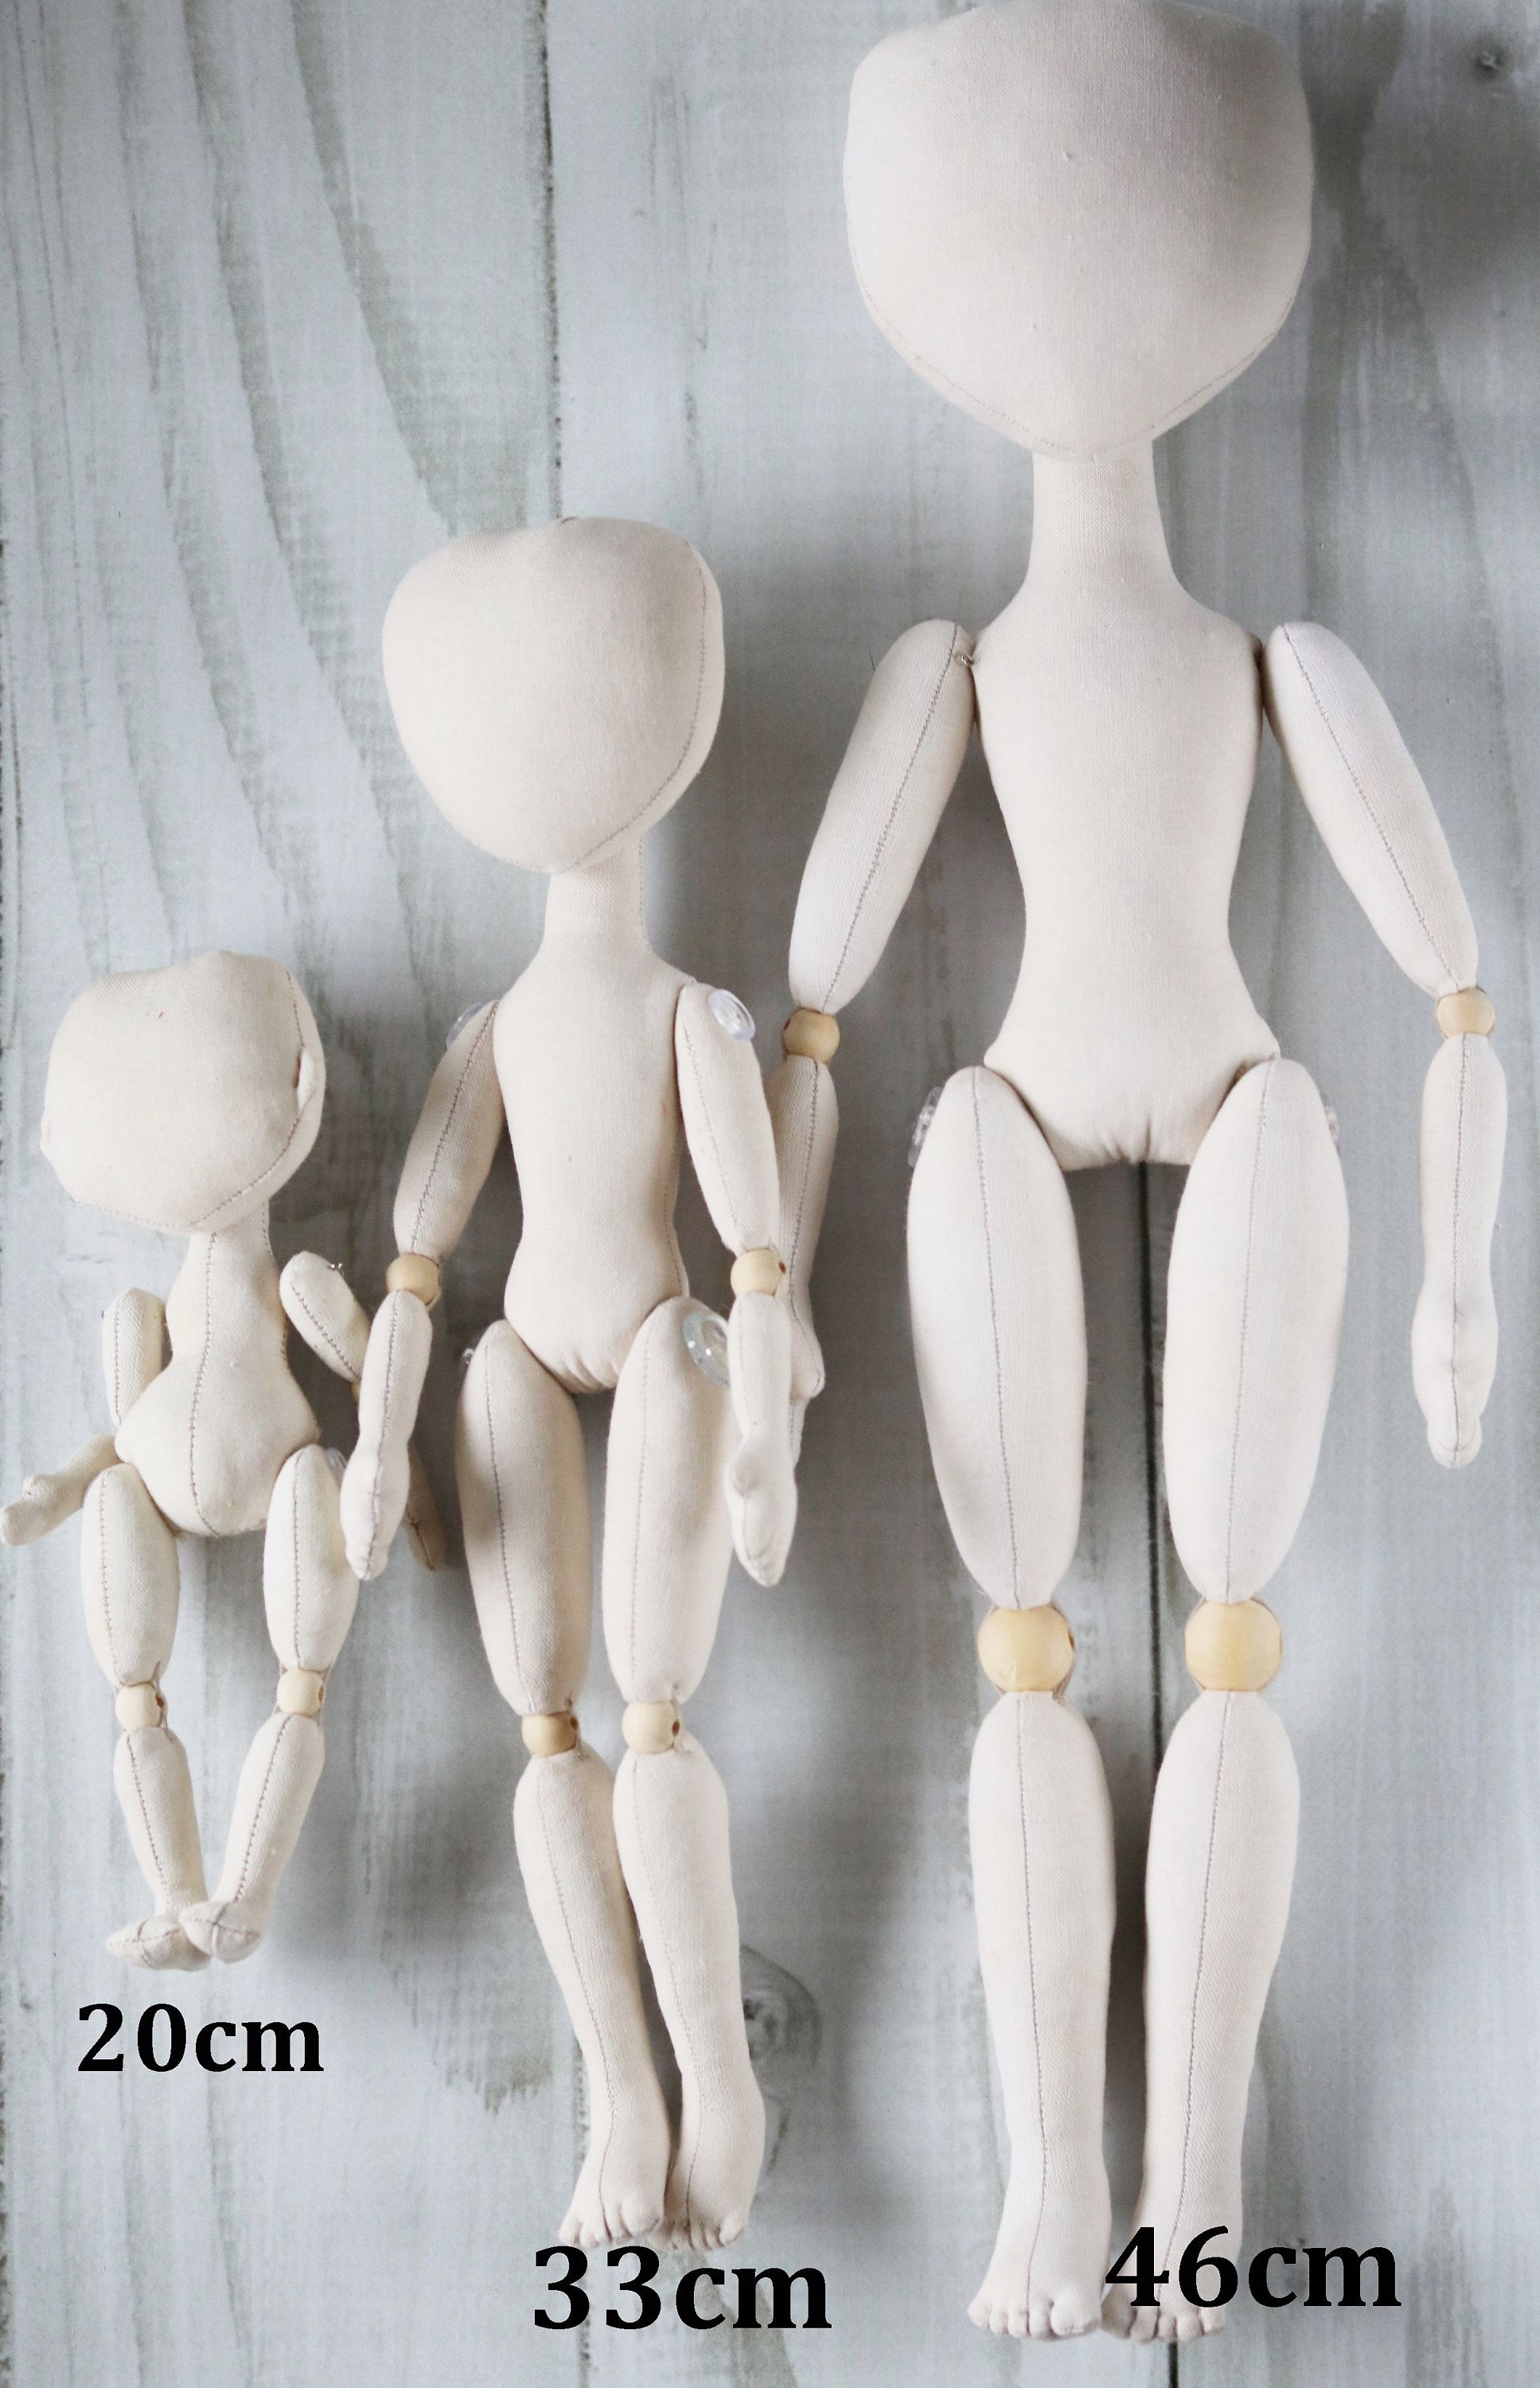 Doll body for crafting Blank doll body Doll making Cloth Handmade doll supply Textile doll Craft doll body Ragdoll body Fabric form Doll #dollmaking